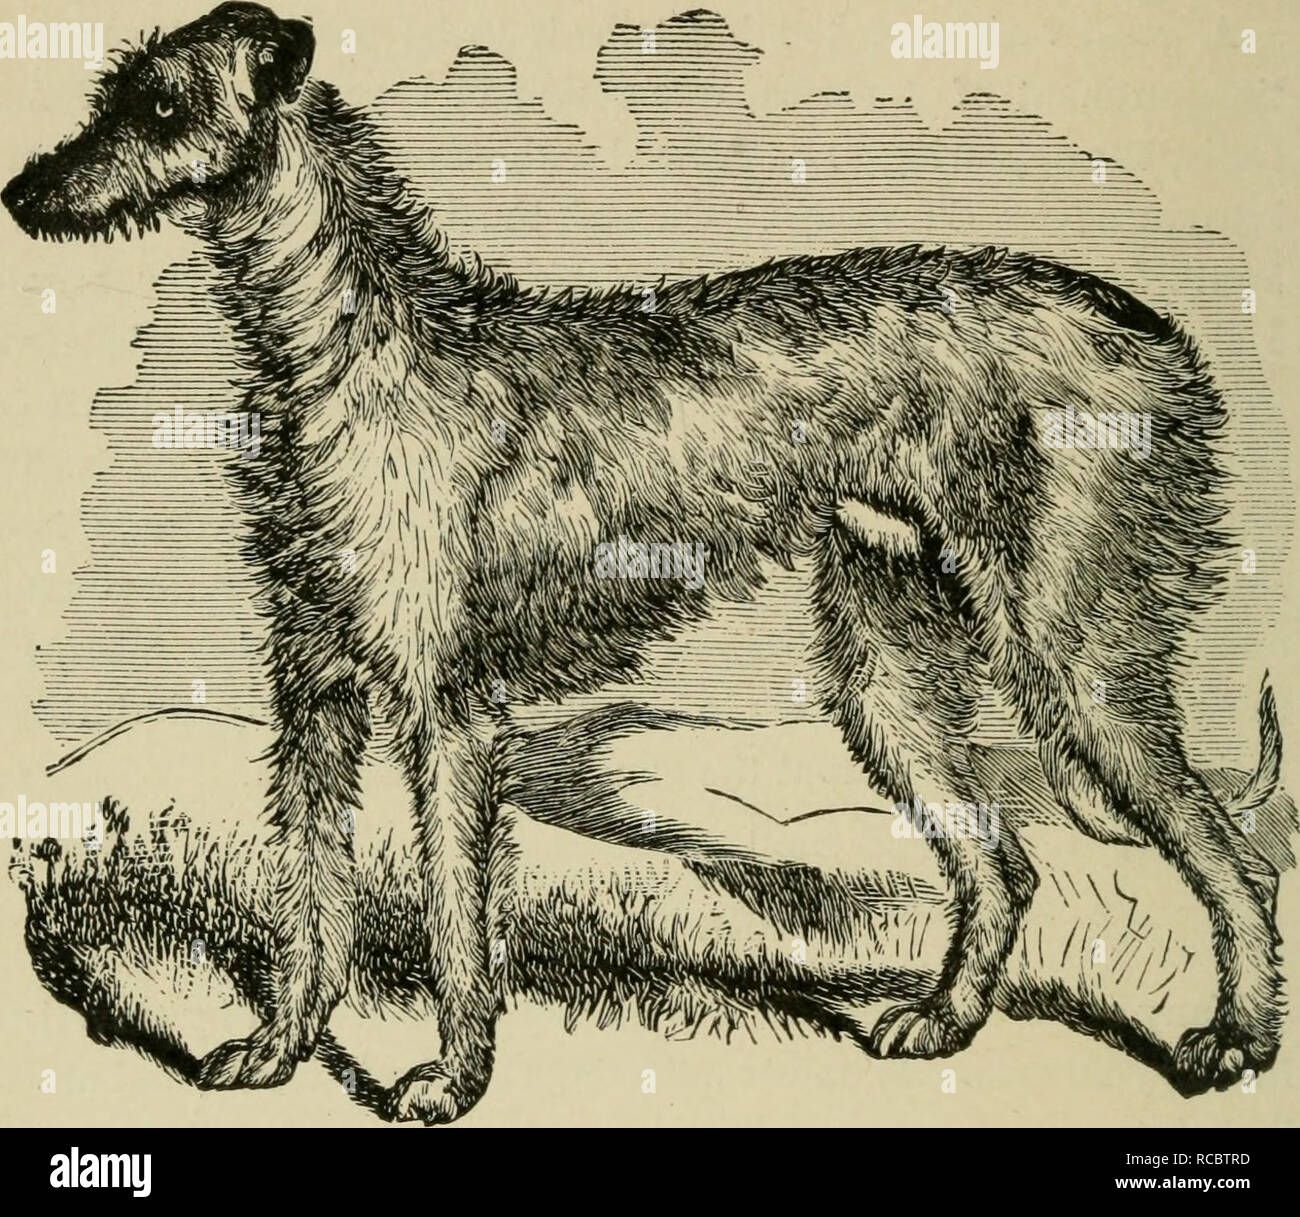 . The dogs of Great Britain, America, and other countries. Dog. [from old catalog]. Fig. 3.—DEERHOUND, BRAN. CHAPTEK III. DOMESTICATED DOGS HUNTING CHIEFLY BY THE EYE, AND KILLING THEIR GAME FOR MAN'S USE. THE ROUGH SCOTCH GREYHOUND AND DEERHOUND.—THE SMOOTH OR ENGLISH GREYHOUND. —THE GAZEHOUND. — THE IRISH GREYHOUND, OR WOLF-DOG.—THE FRENCH MATIN—THE HARE-INDIAN DOG—THE ALBANIAN DOG.—THE GRECIAN GREYHOUND.—THE TURKISH GREY- HOUND.—THE PERSIAN GREYHOUND—THE RUSSIAN GREYHOUND.—THE ITALIAN GREYHOUND. THE ROUGH SCOTCH GREYHOUND AND DEERHOUND. This breed of dogs is, I believe, one of the oldest an Stock Photo